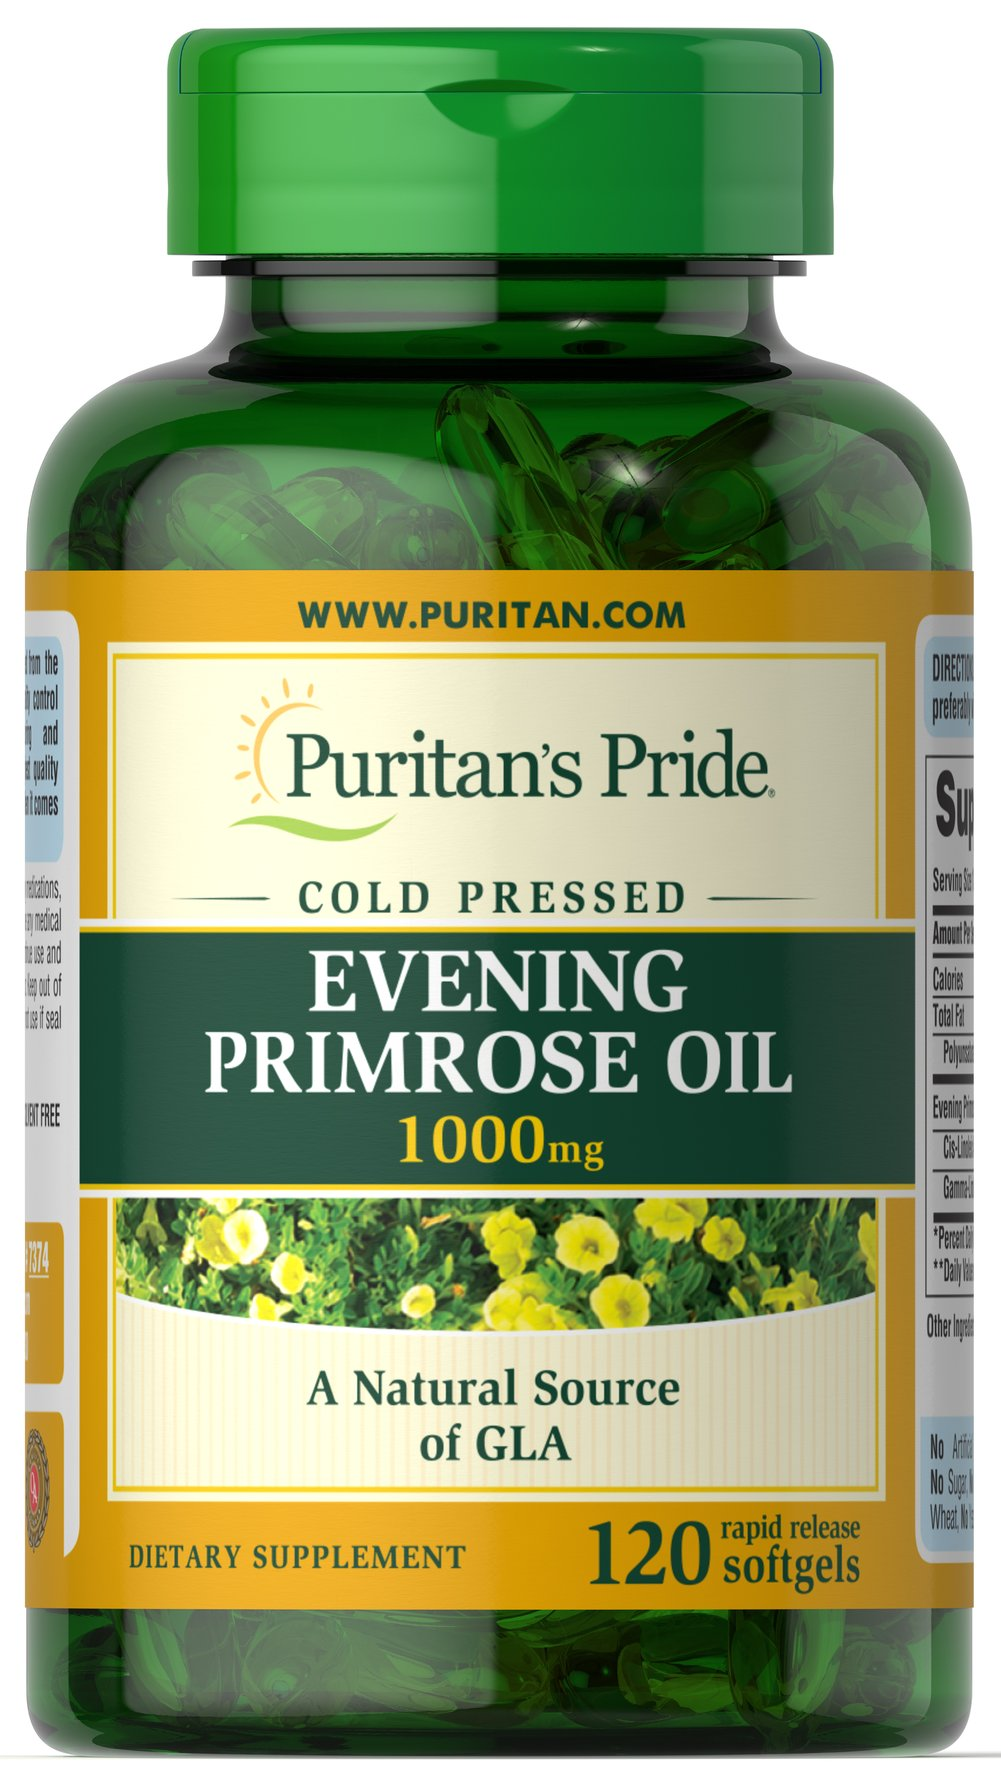 Evening Primrose Oil 1000 mg with GLA <p>For centuries, EPO has been used to provide nutritional support for women with premenstrual syndrome (PMS); it may also play a role in promoting smooth, healthy-looking skin.**</p><p>These easy-to-swallow softgels are a natural source of GLA (Gamma Linolenic Acid). Our EPO contains one of the most biologically active forms of this Omega-6 fatty acid available today.</p>  120 Softgels 1000 mg $26.99